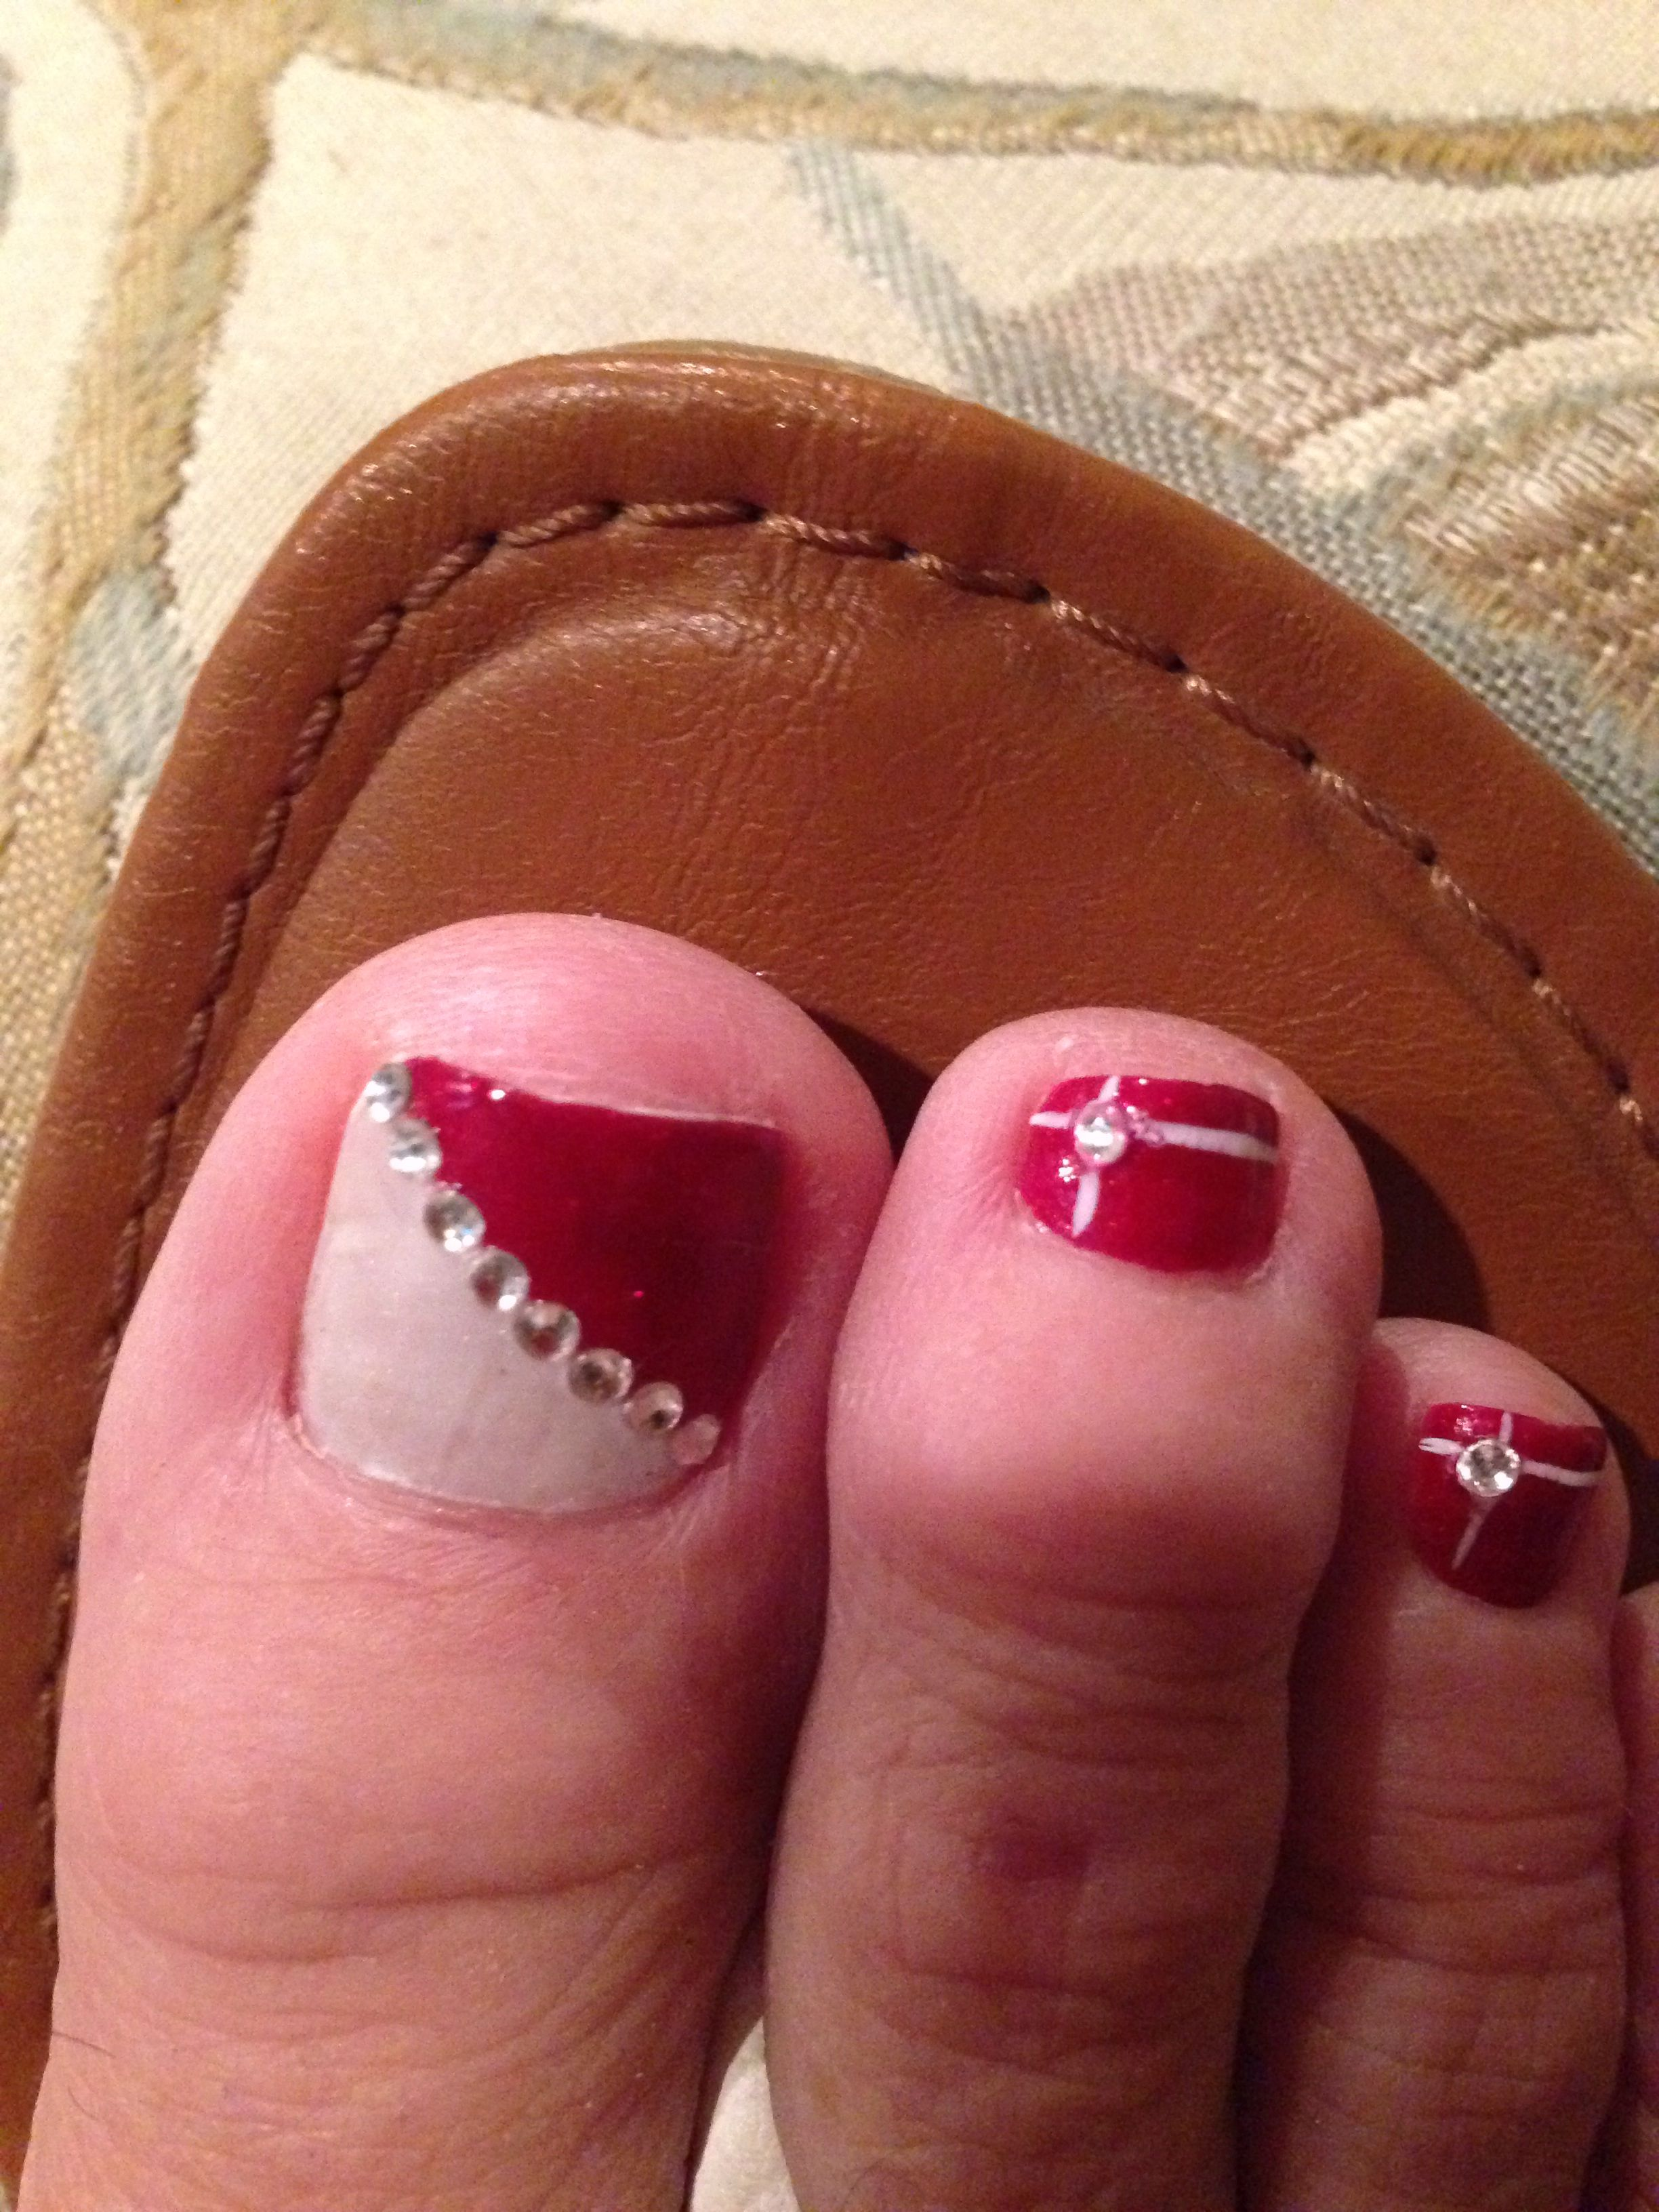 Nail design done at Fancy Nails in Victoria, Texas. Jessie was the ...